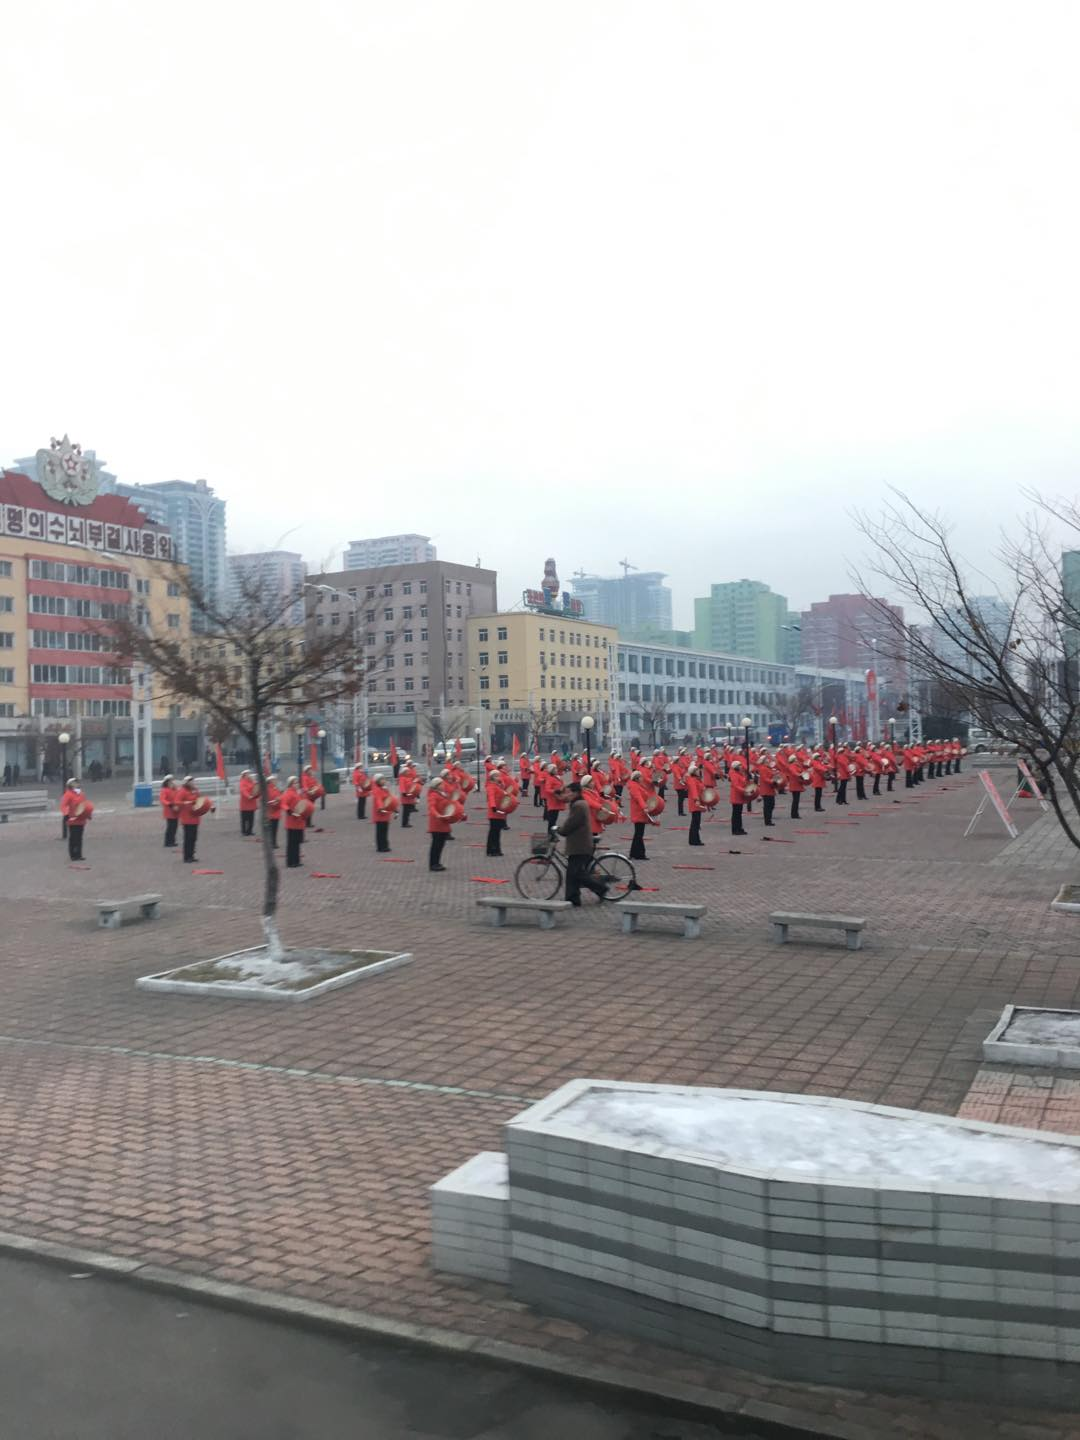 The square in front of Pyongyang Train Station